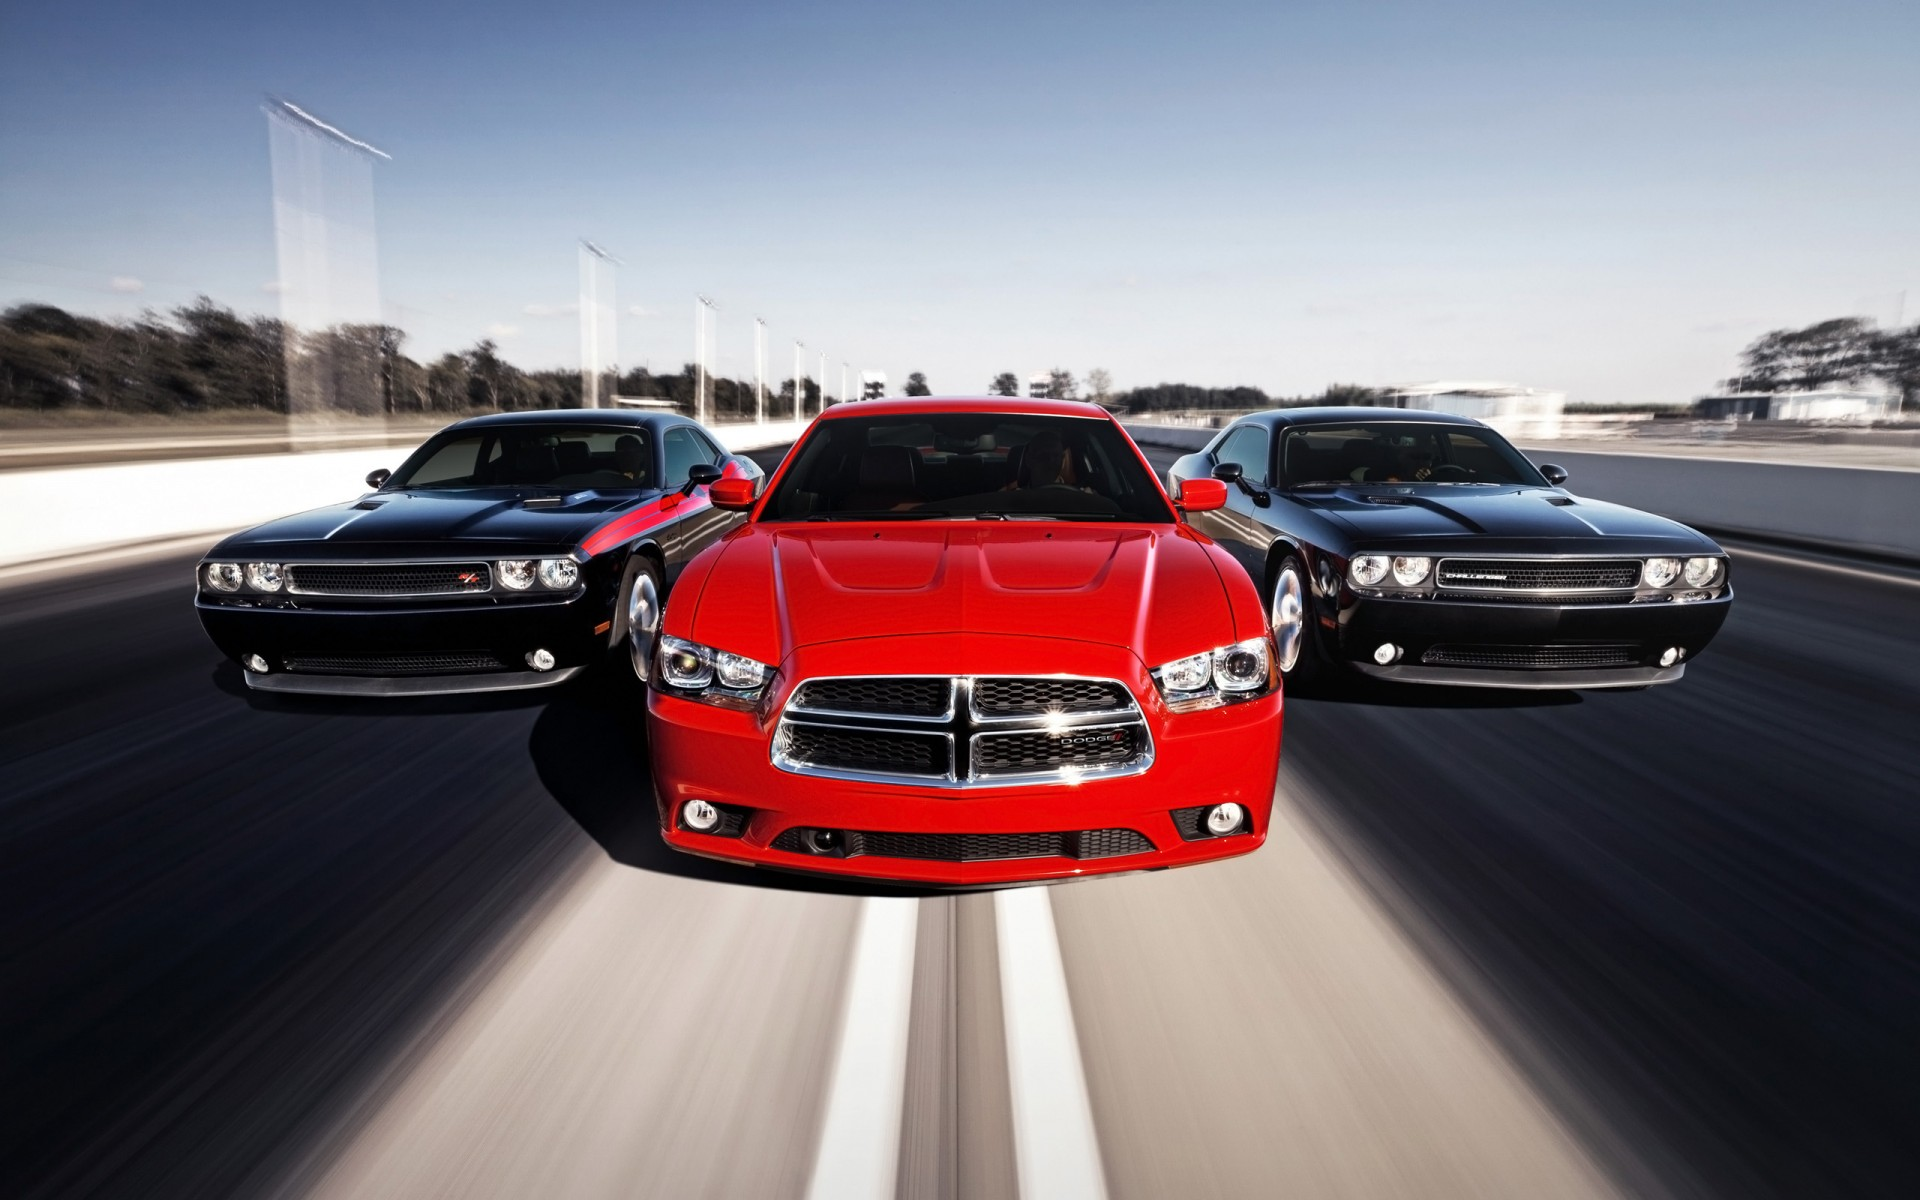 2014 Dodge Chargers Wallpaper Hd Car Wallpapers Id 4401